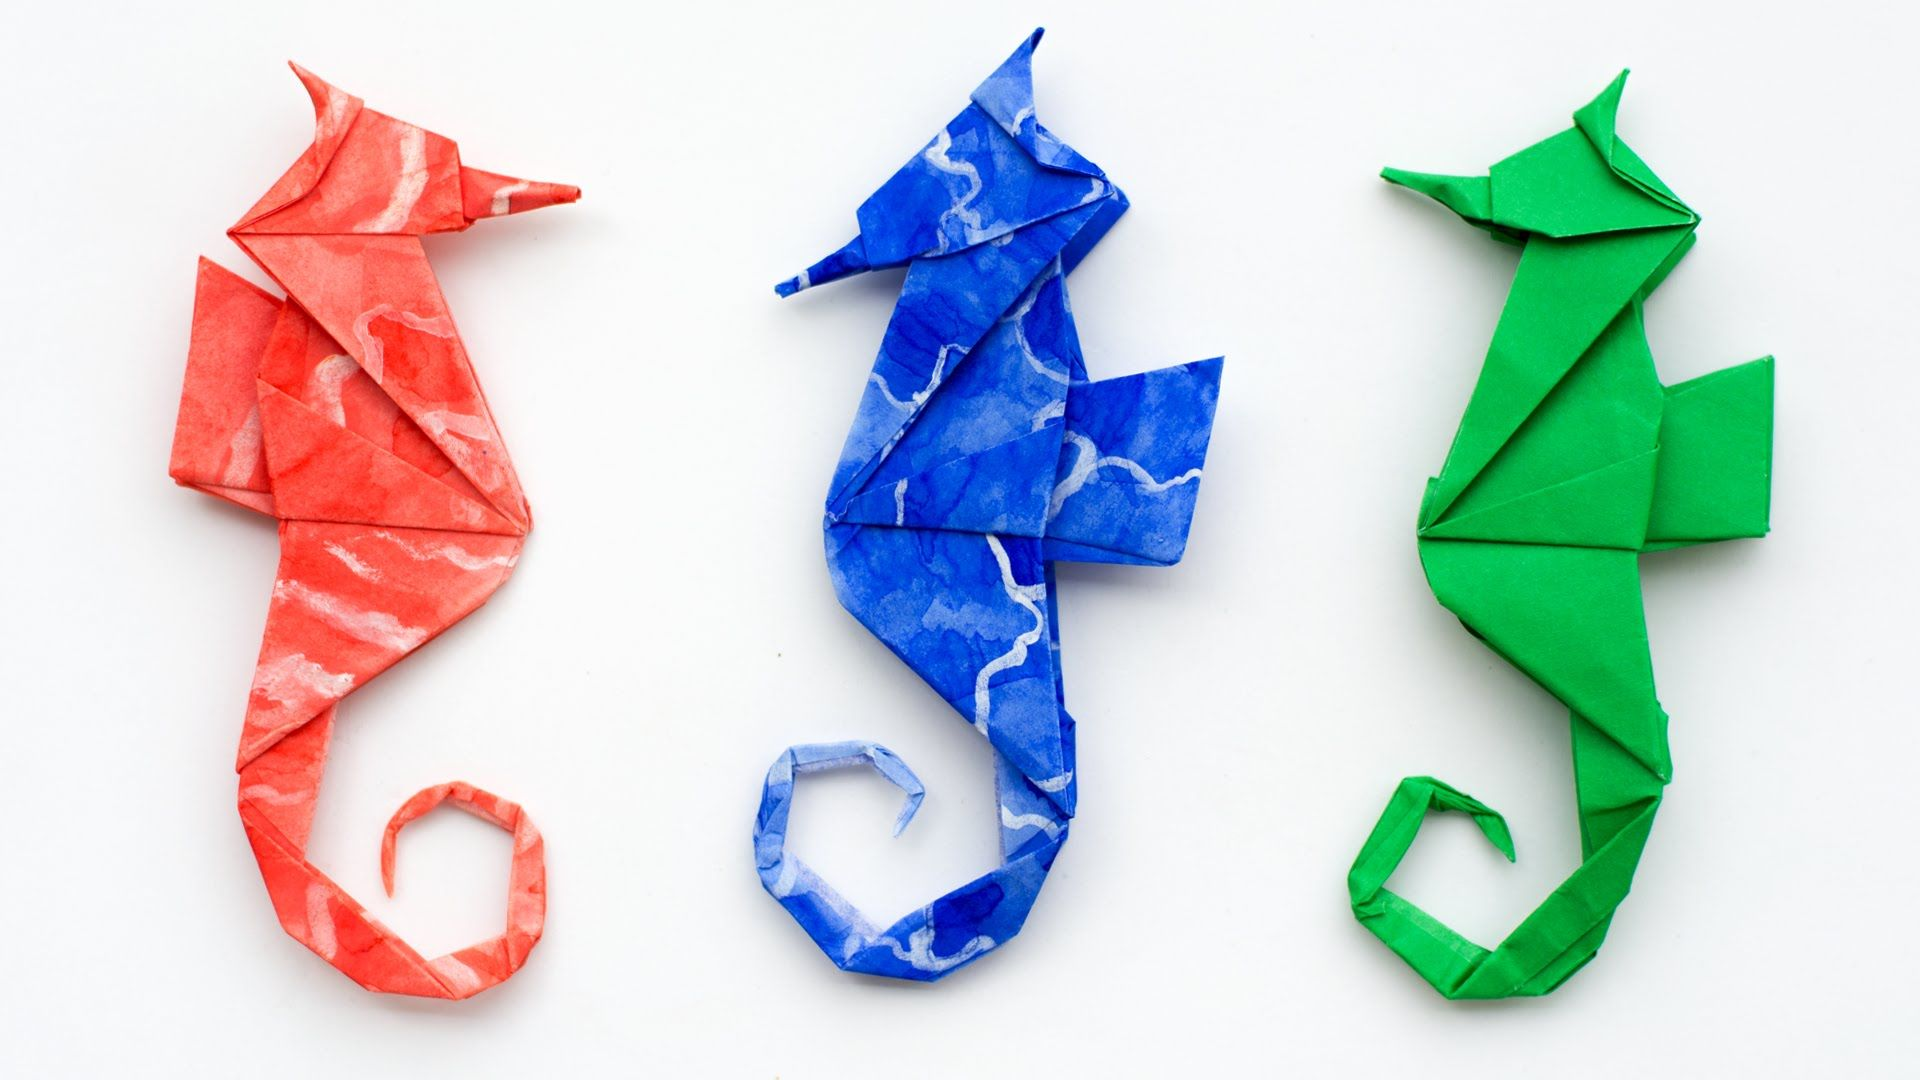 Origami Seahorse Instructions Hello My Friends Today Im Gonna Ratrat Origamiorigami Rat Diagram Guide Show You How To Make An From One Piece Of Paper